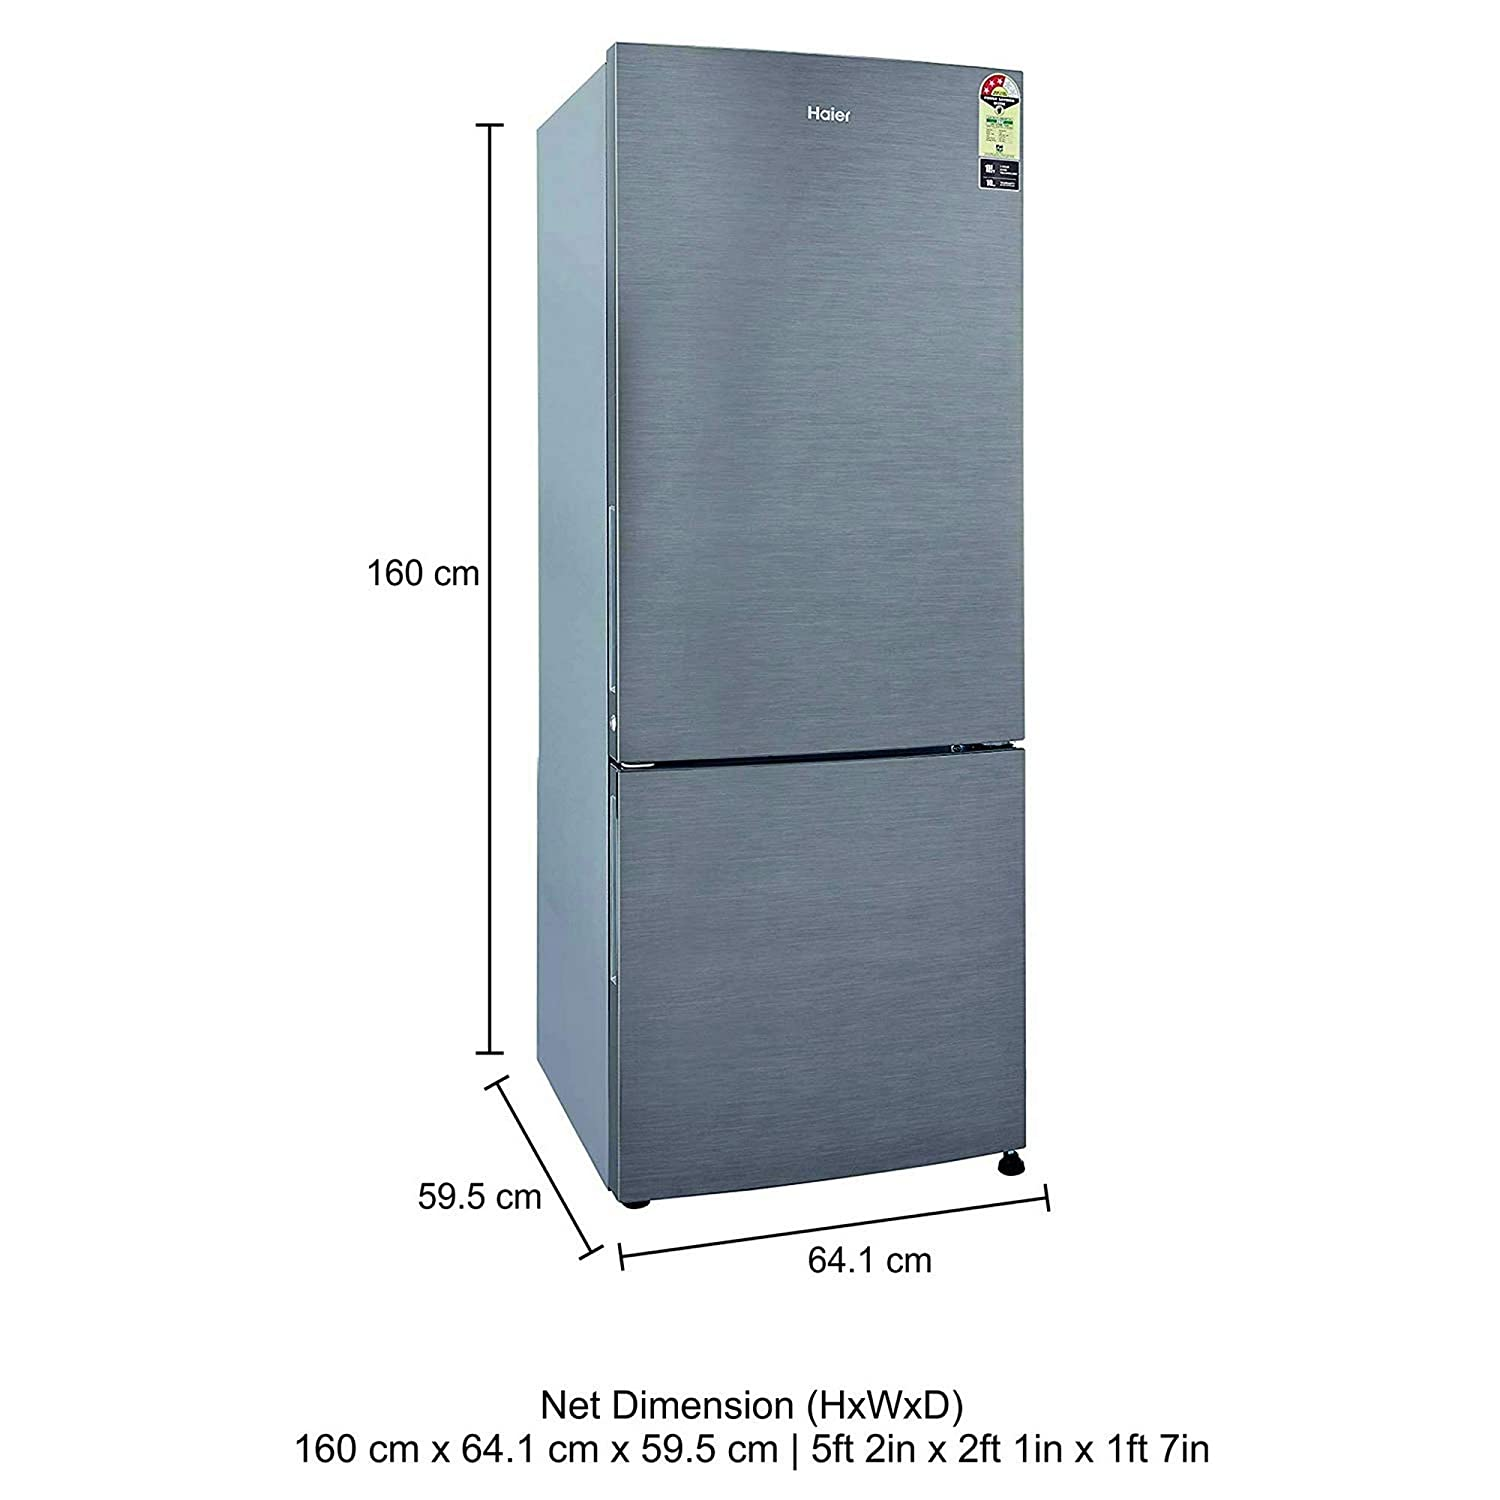 haier 320 l 3 star frost free double door  refrigerator(hrb-3404bs-r/hrb-3404bs-e, brushline silver, bottom freezer):  amazon in: home & kitchen